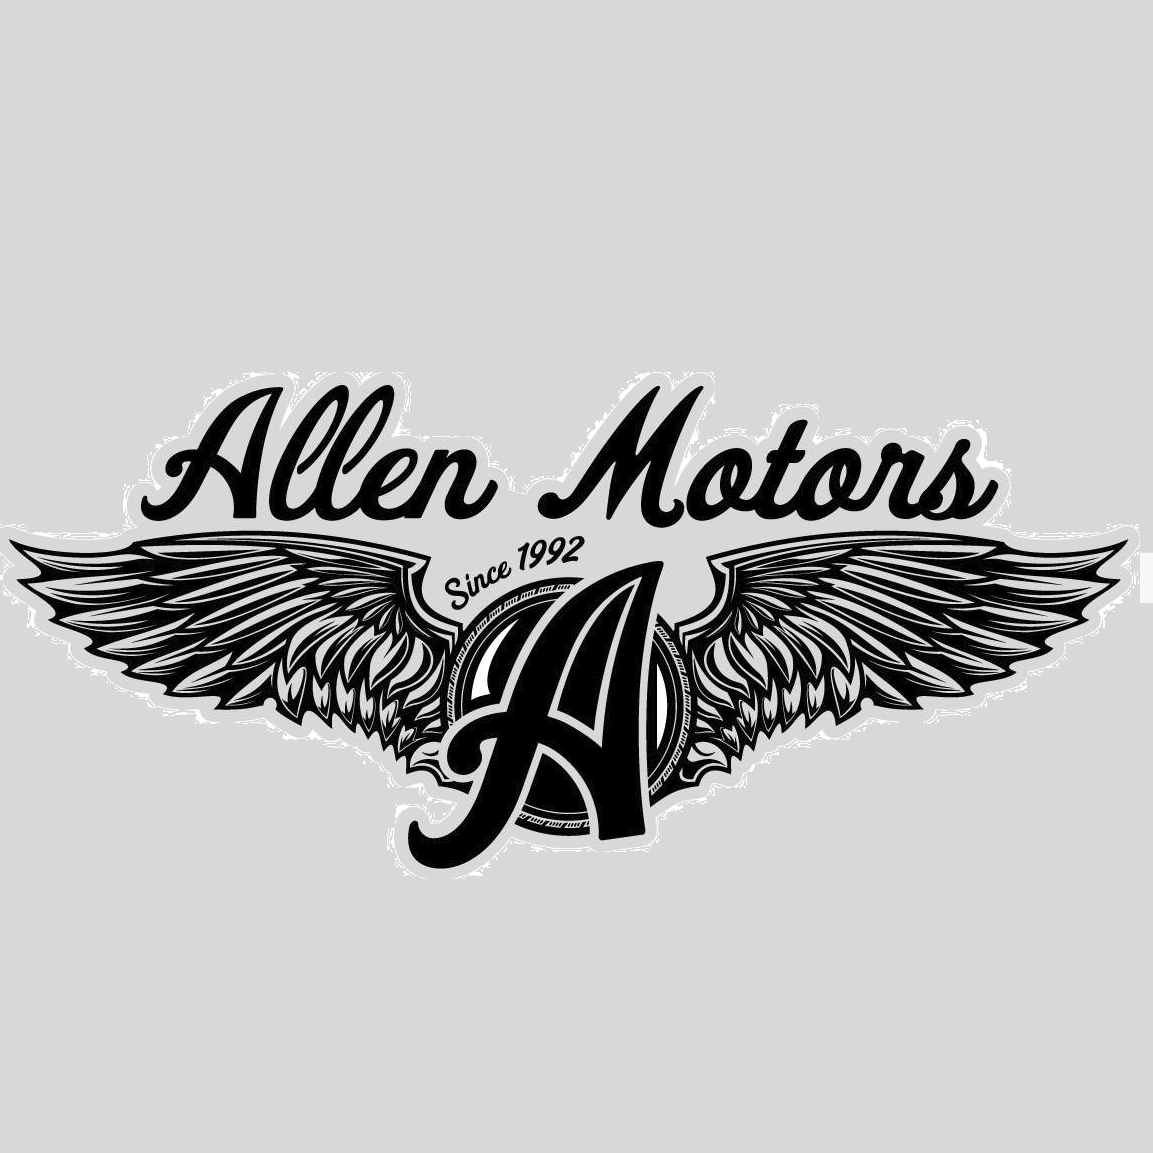 Allen Motors - Fort Smith, AR 72901 - (479)424-1099 | ShowMeLocal.com